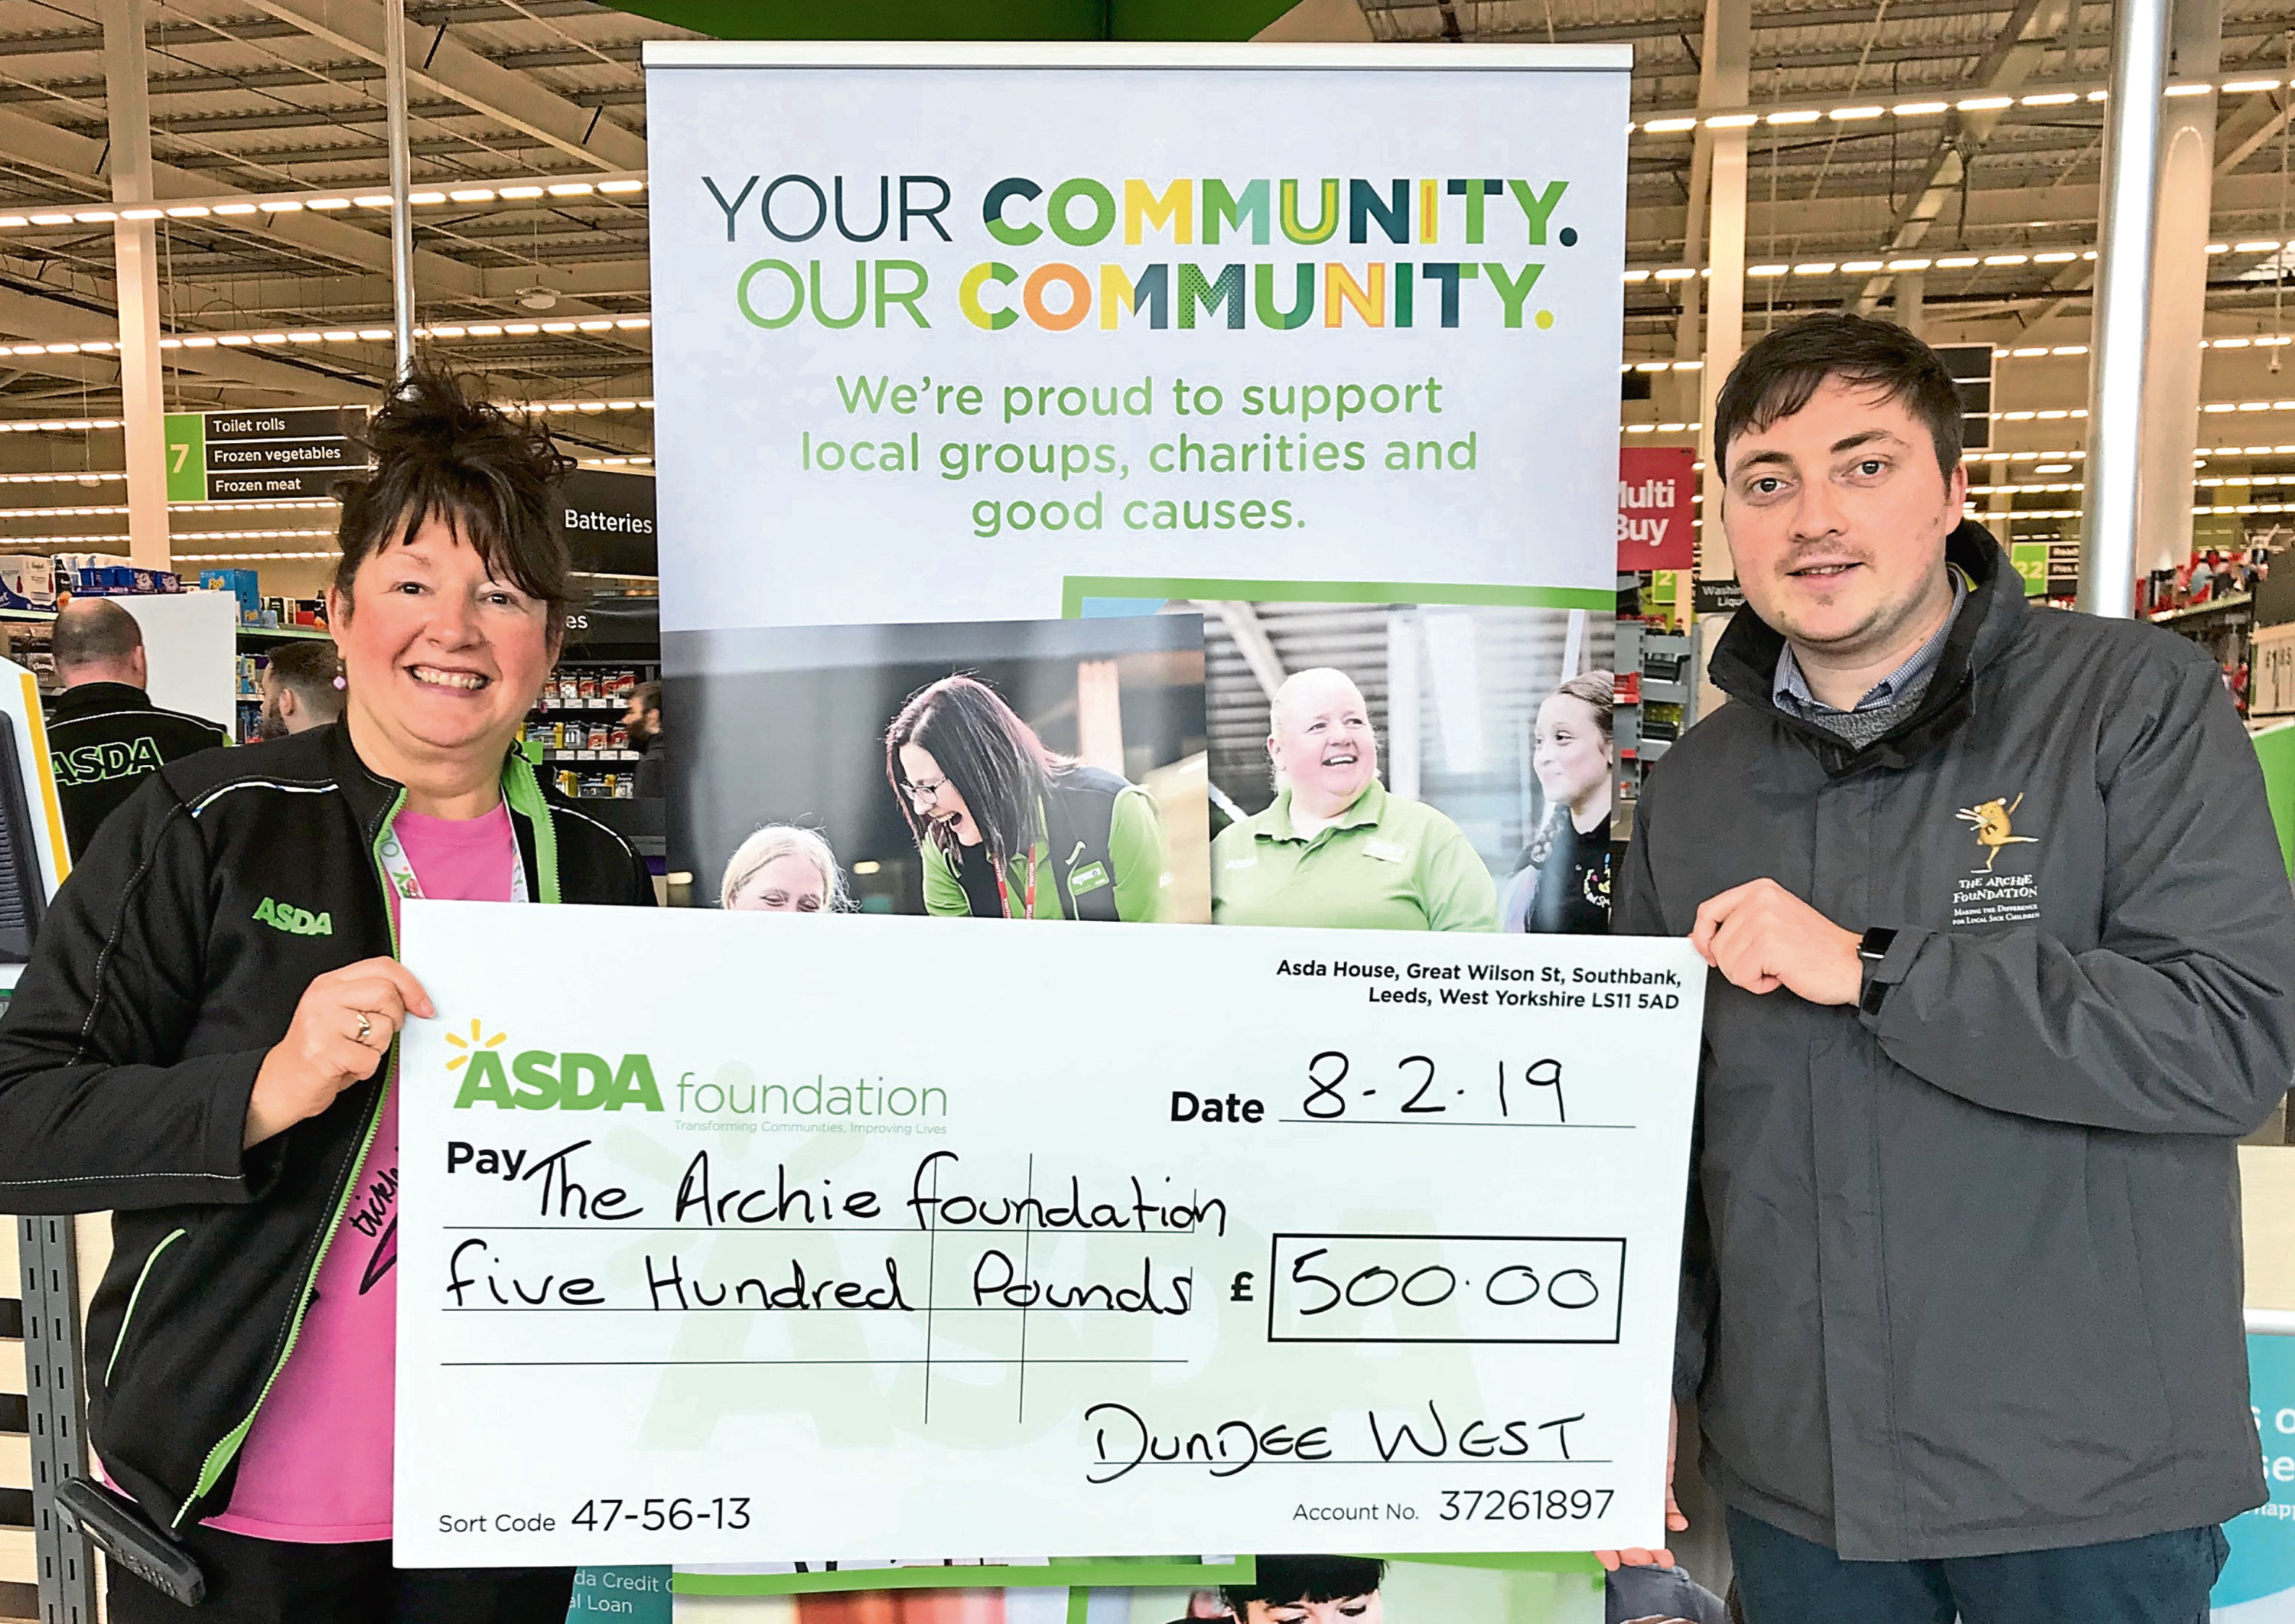 Scott Lorimer, right, receives the cheque on behalf of the Archie Foundation